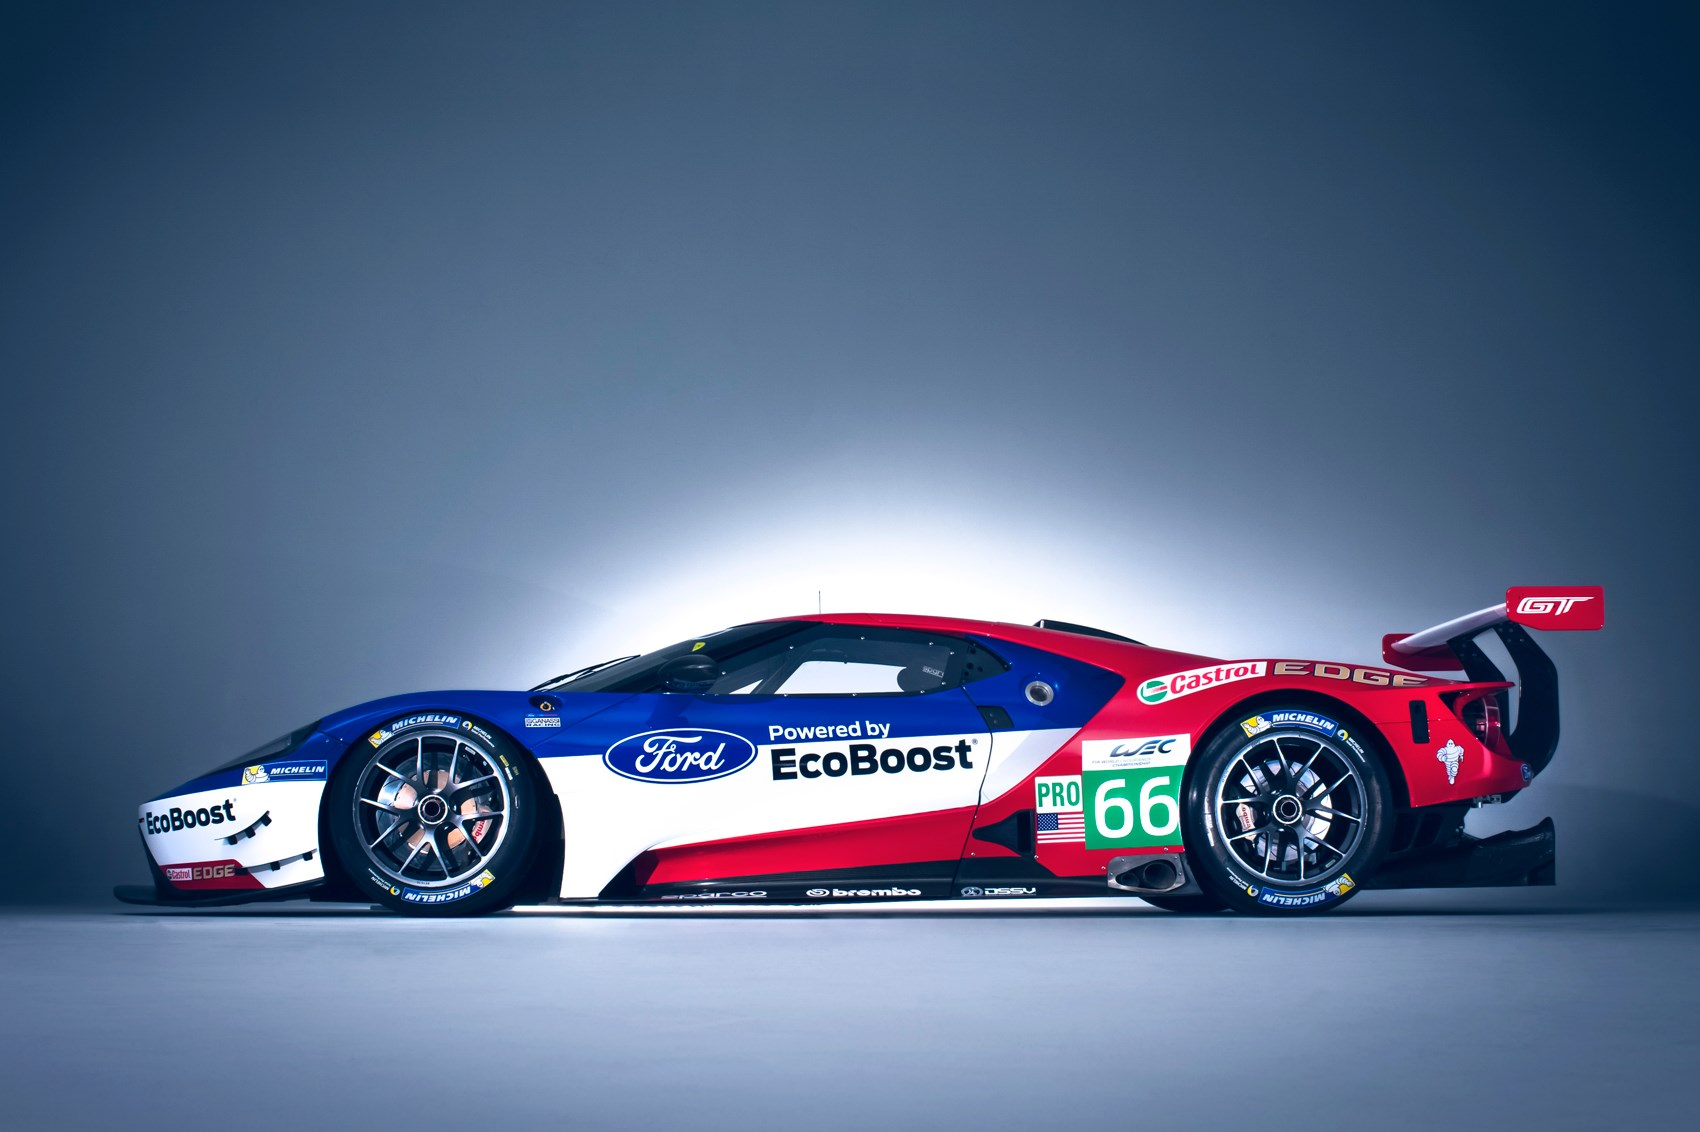 Just How Much Of A Racing Car Is The New Ford Gt